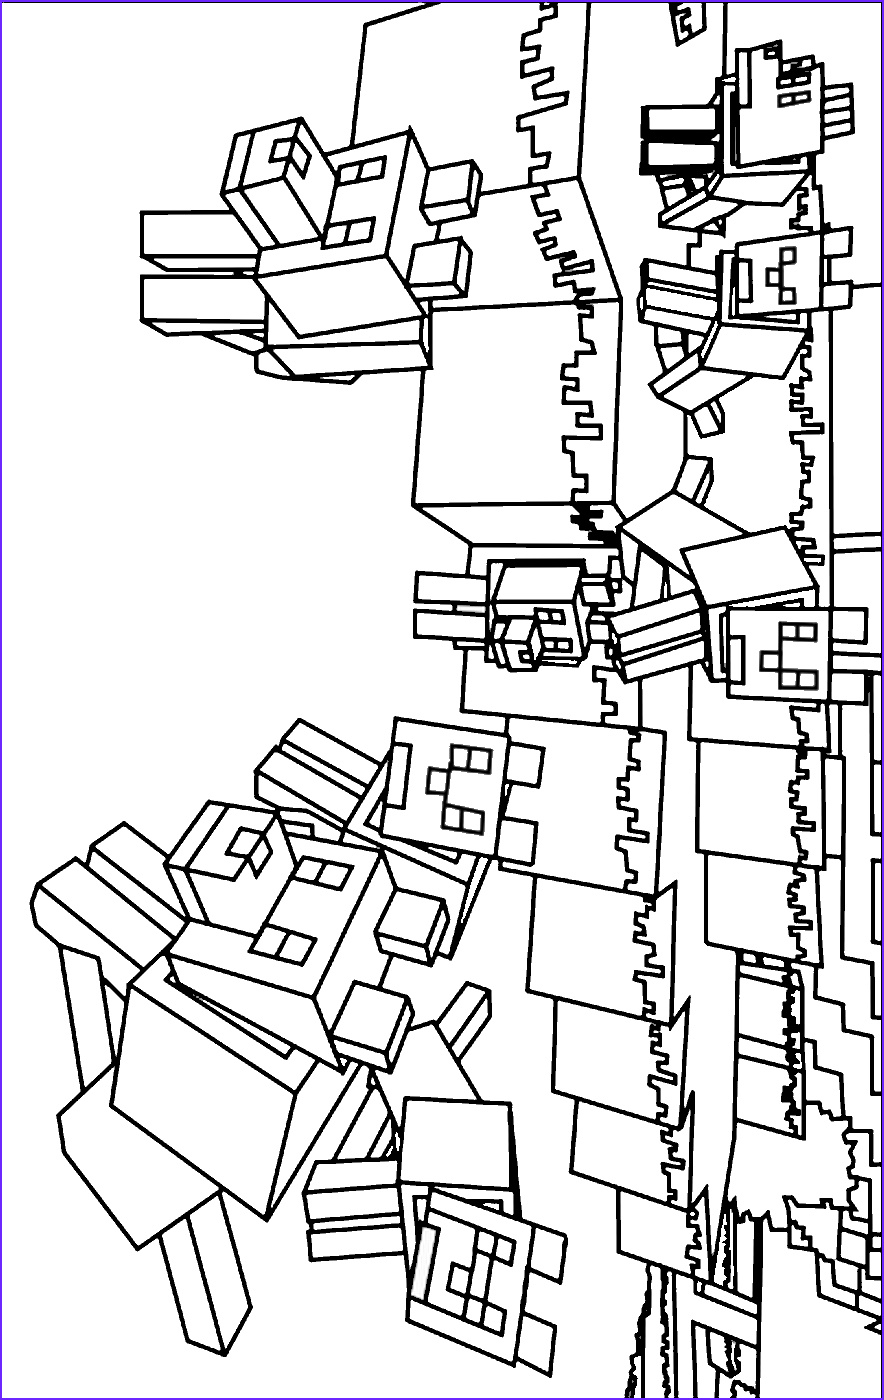 Coloring Page for Minecraft Inspirational Stock Minecraft Coloring Pages Animals Coloring Home